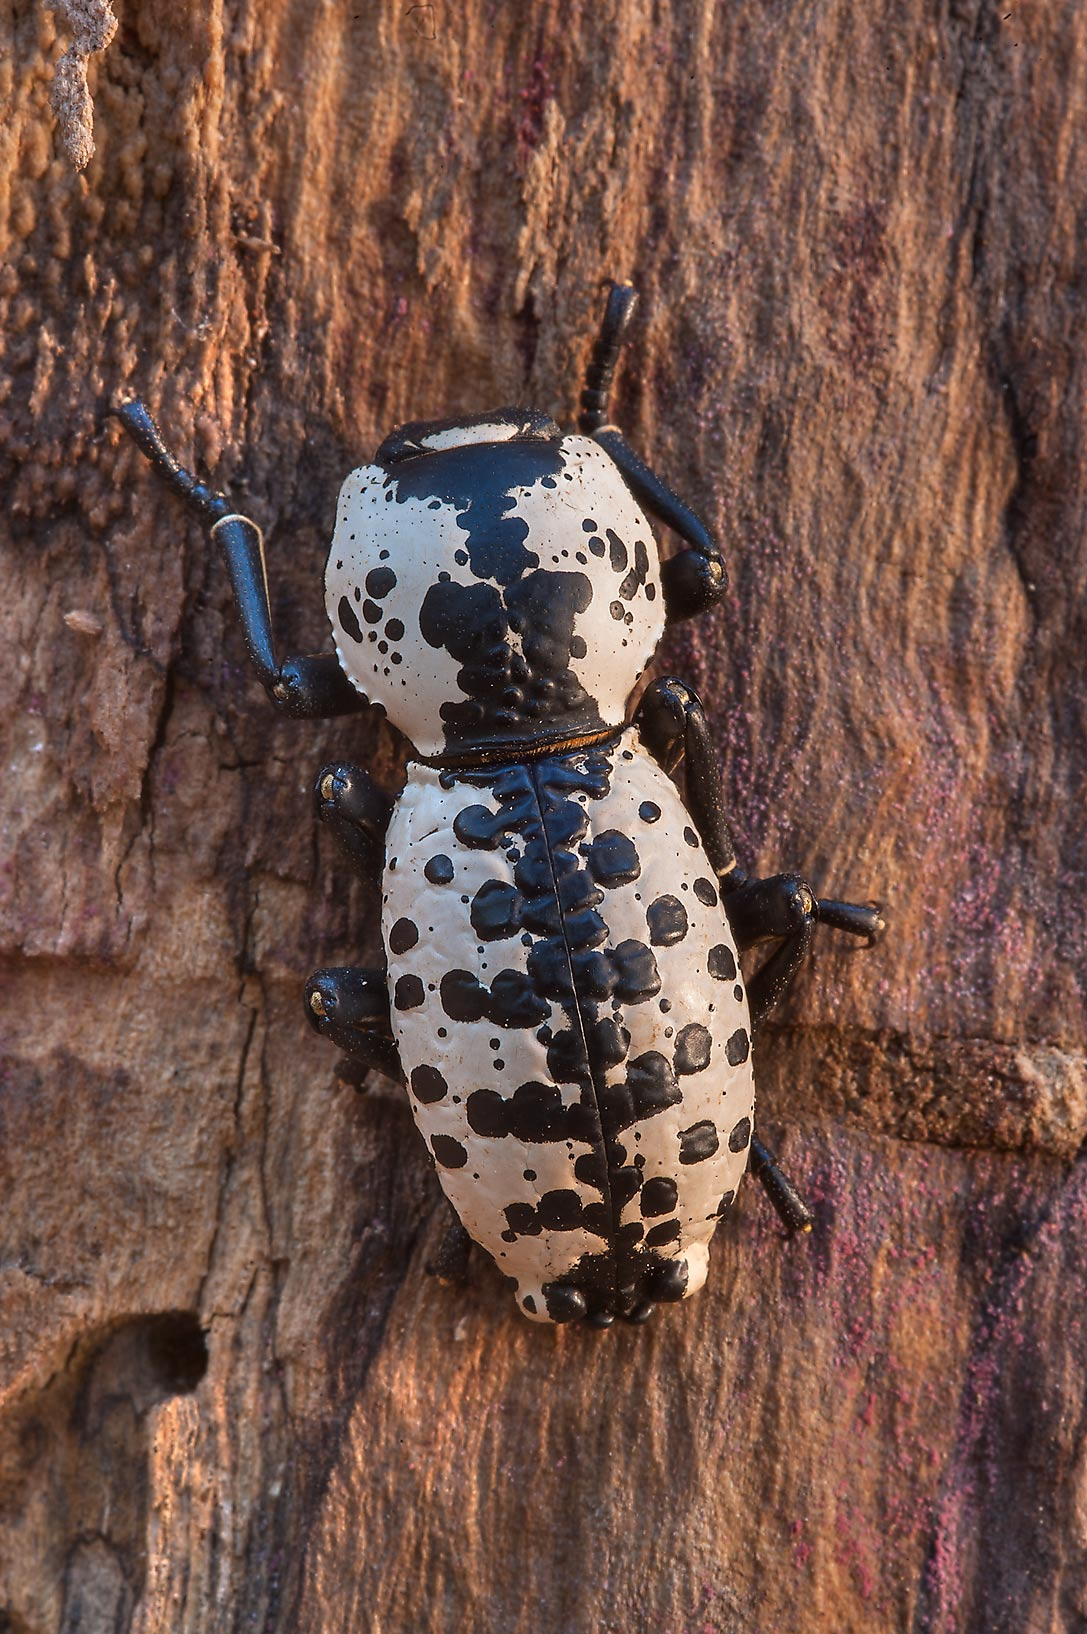 Ironclad beetle (Zopherus haldemani ) at sunrise...Creek Park. College Station, Texas